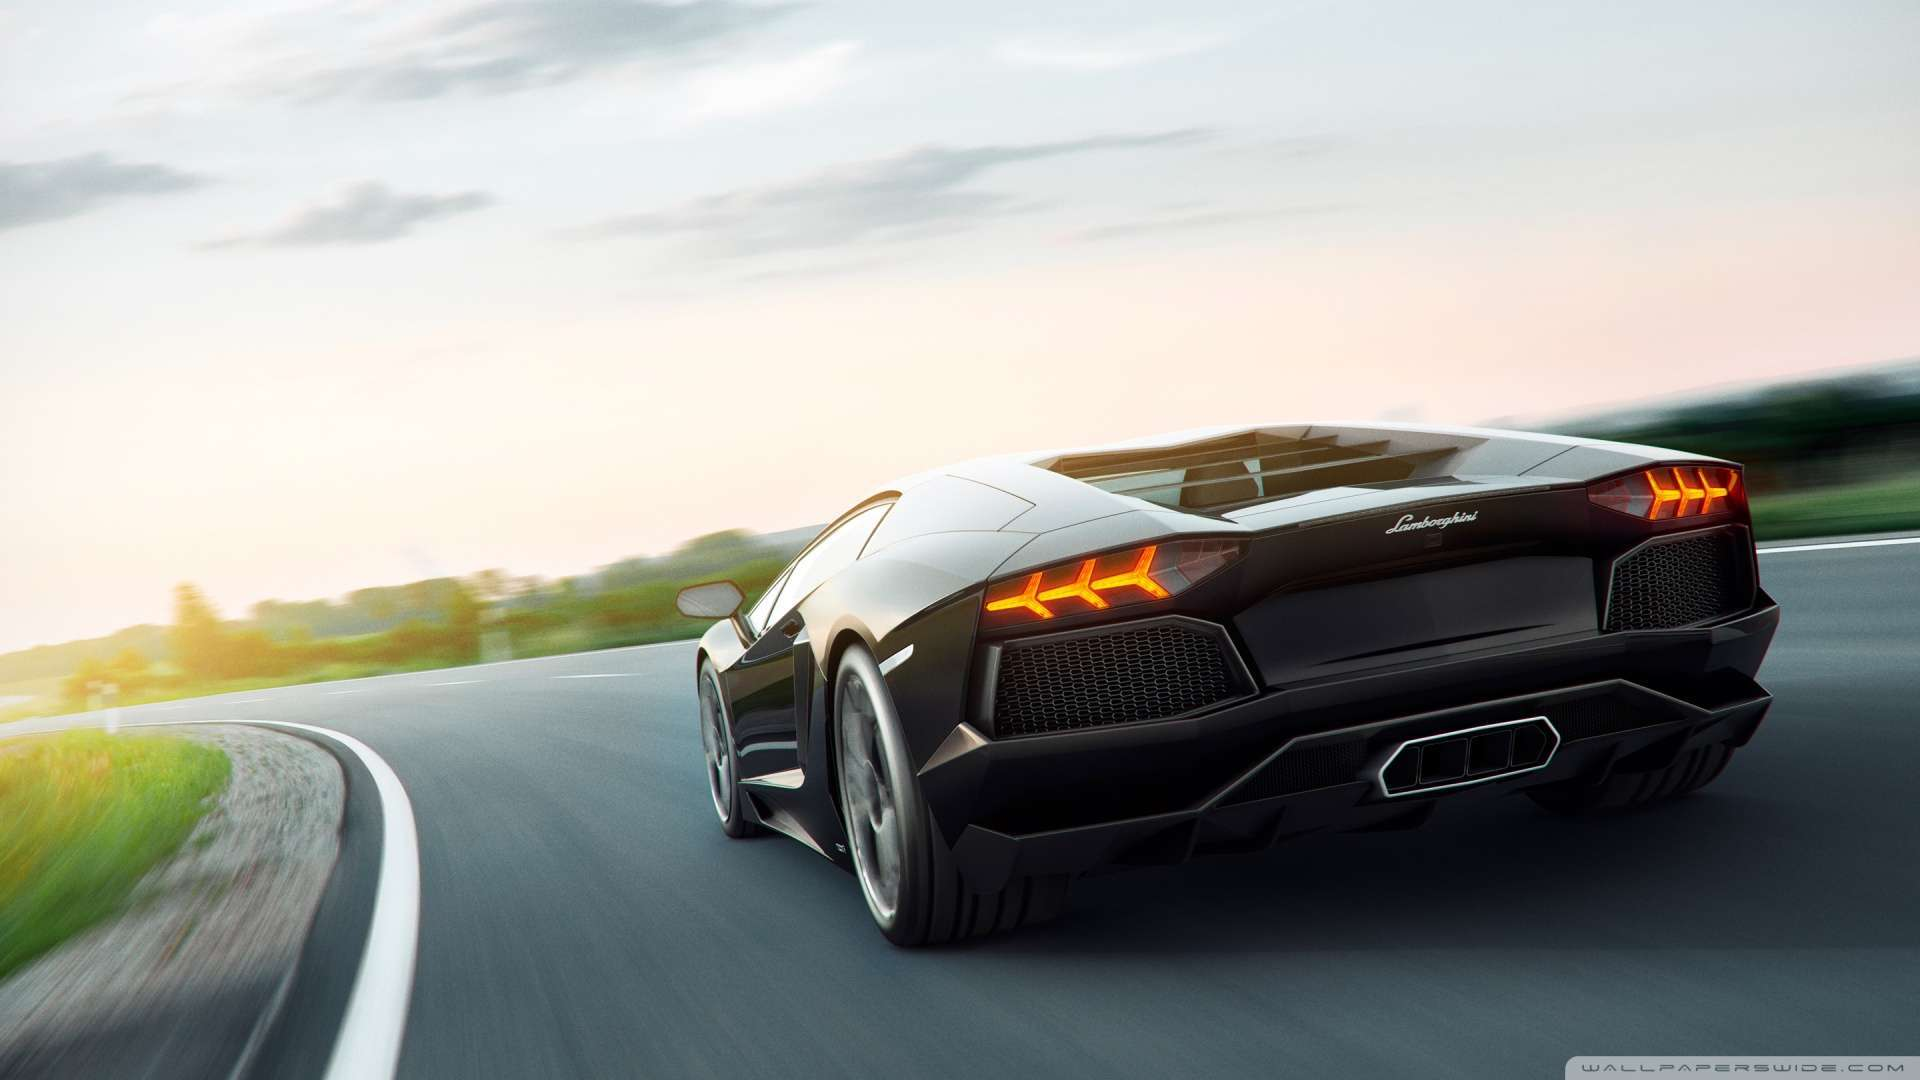 Lamborghini-HD-p-wallpaper-wpc5806651